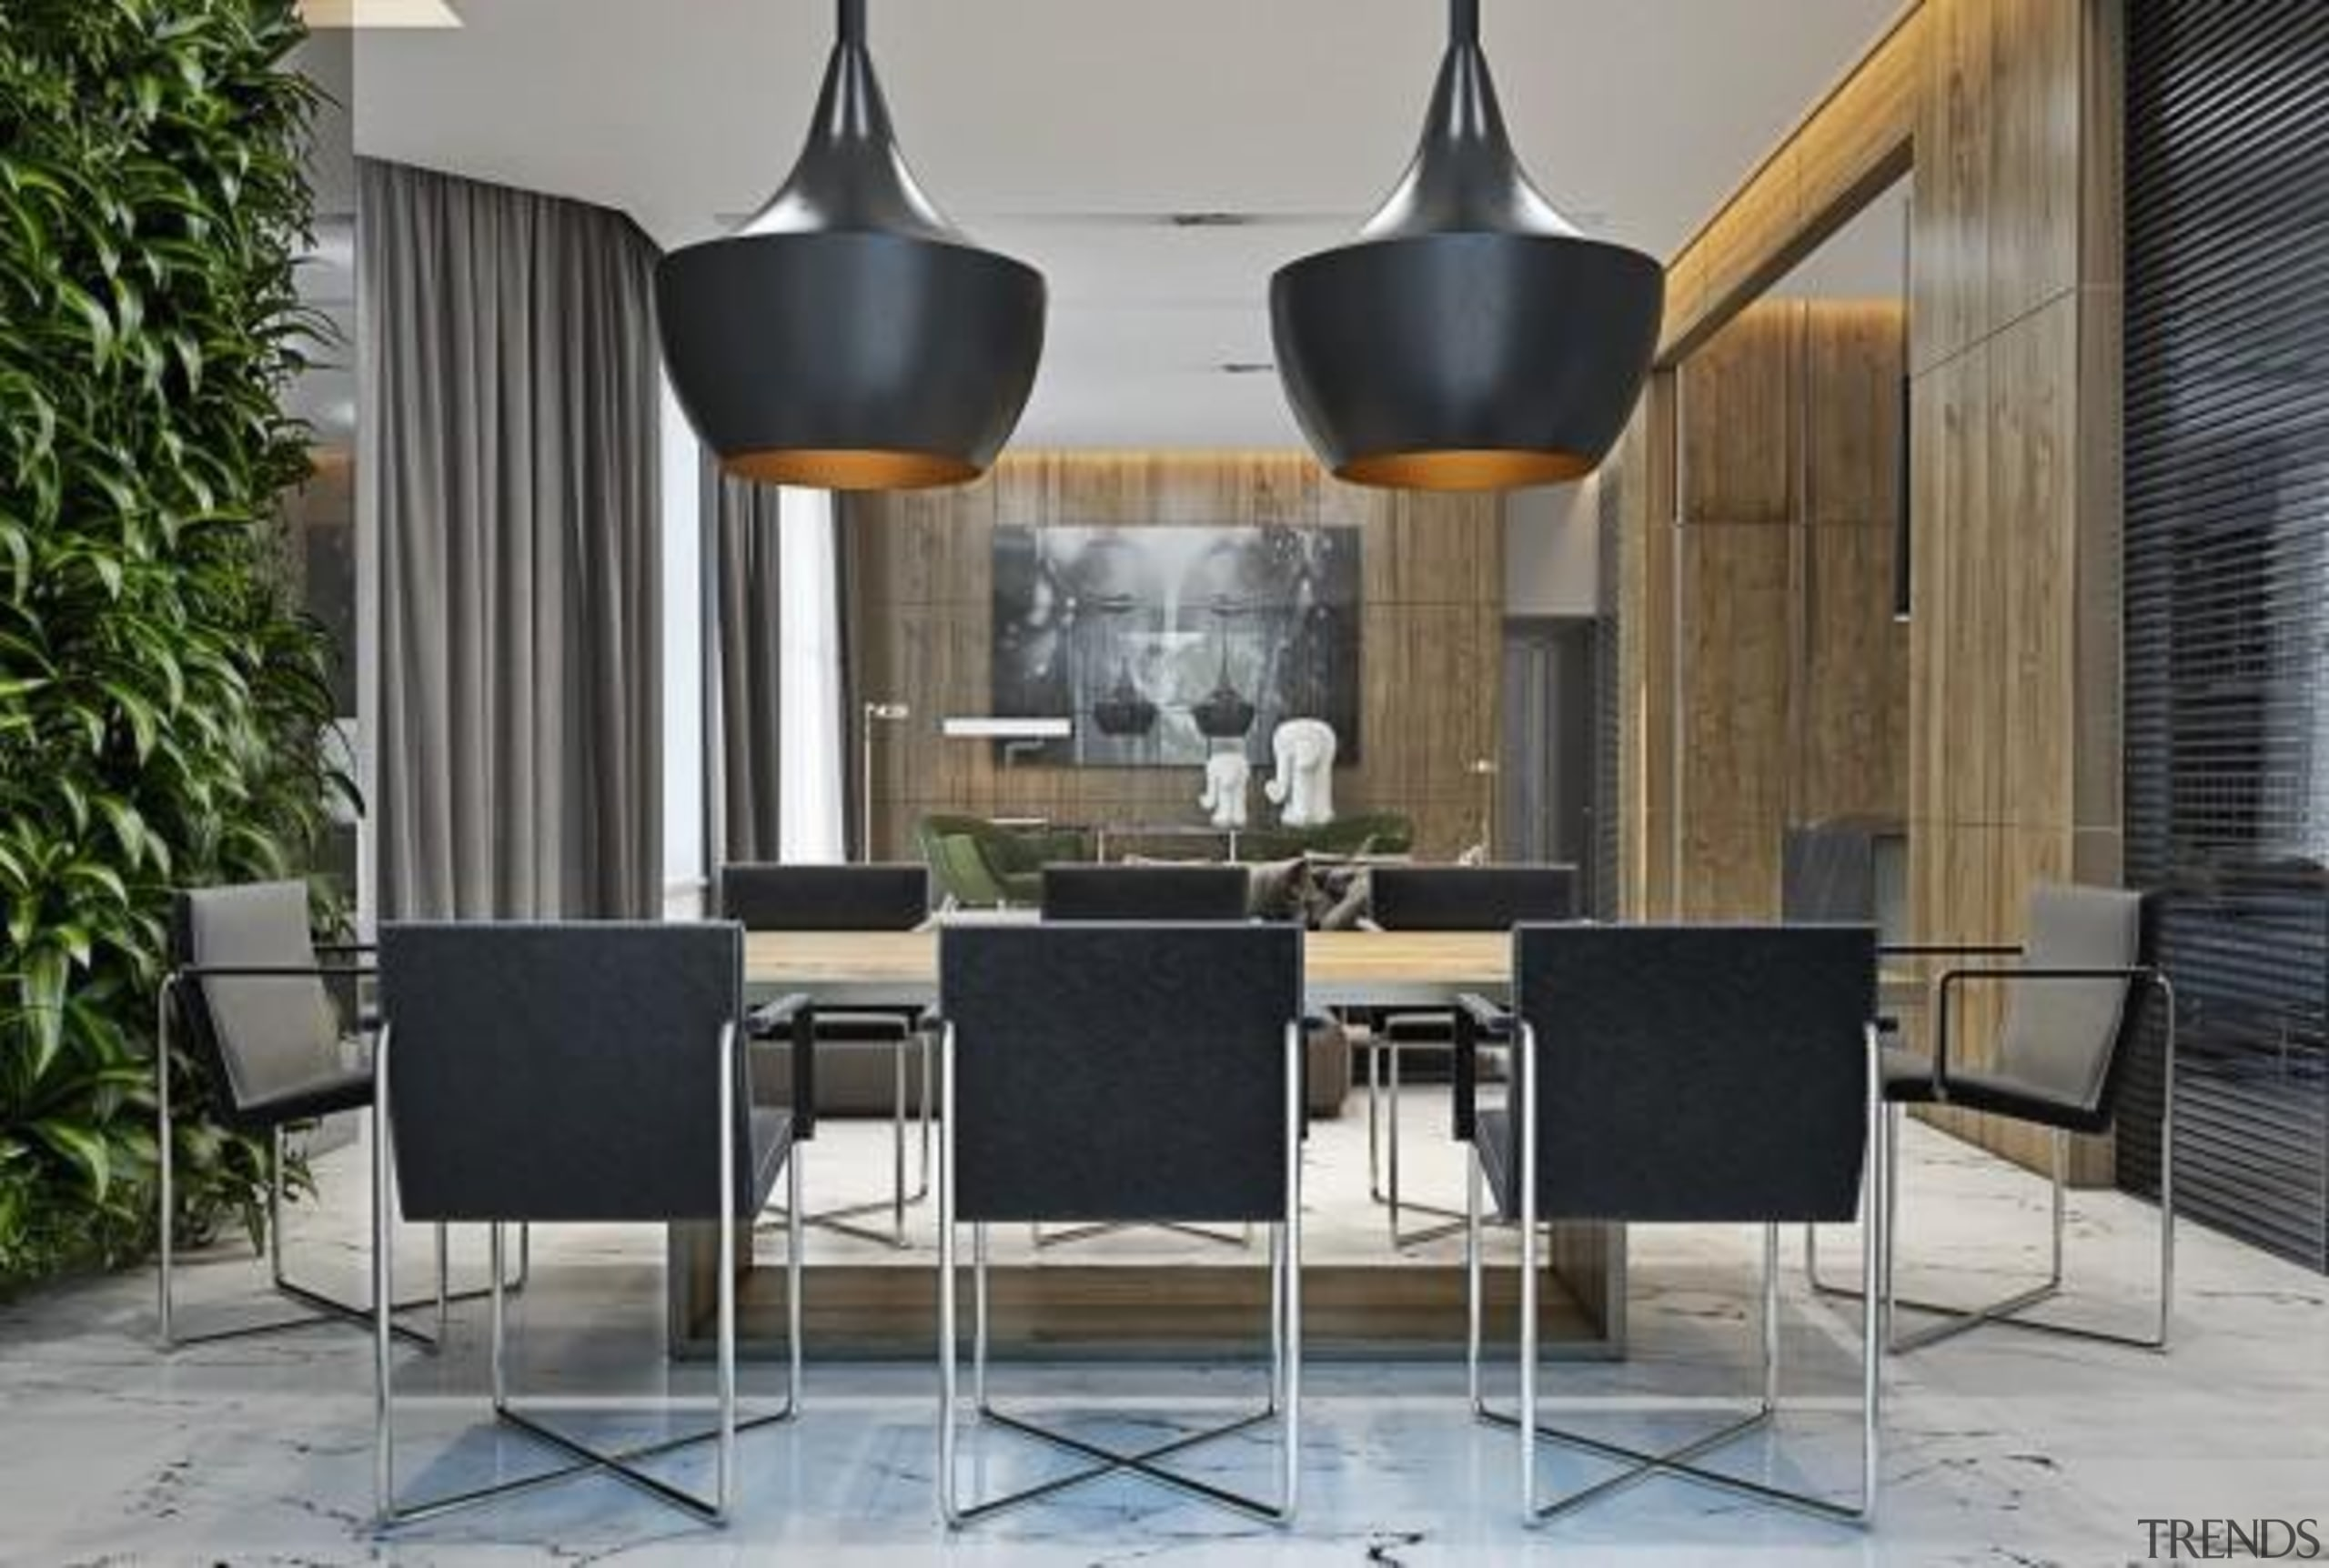 Masculine Apartments - Masculine Apartments - chair | chair, dining room, furniture, interior design, product design, table, gray, black